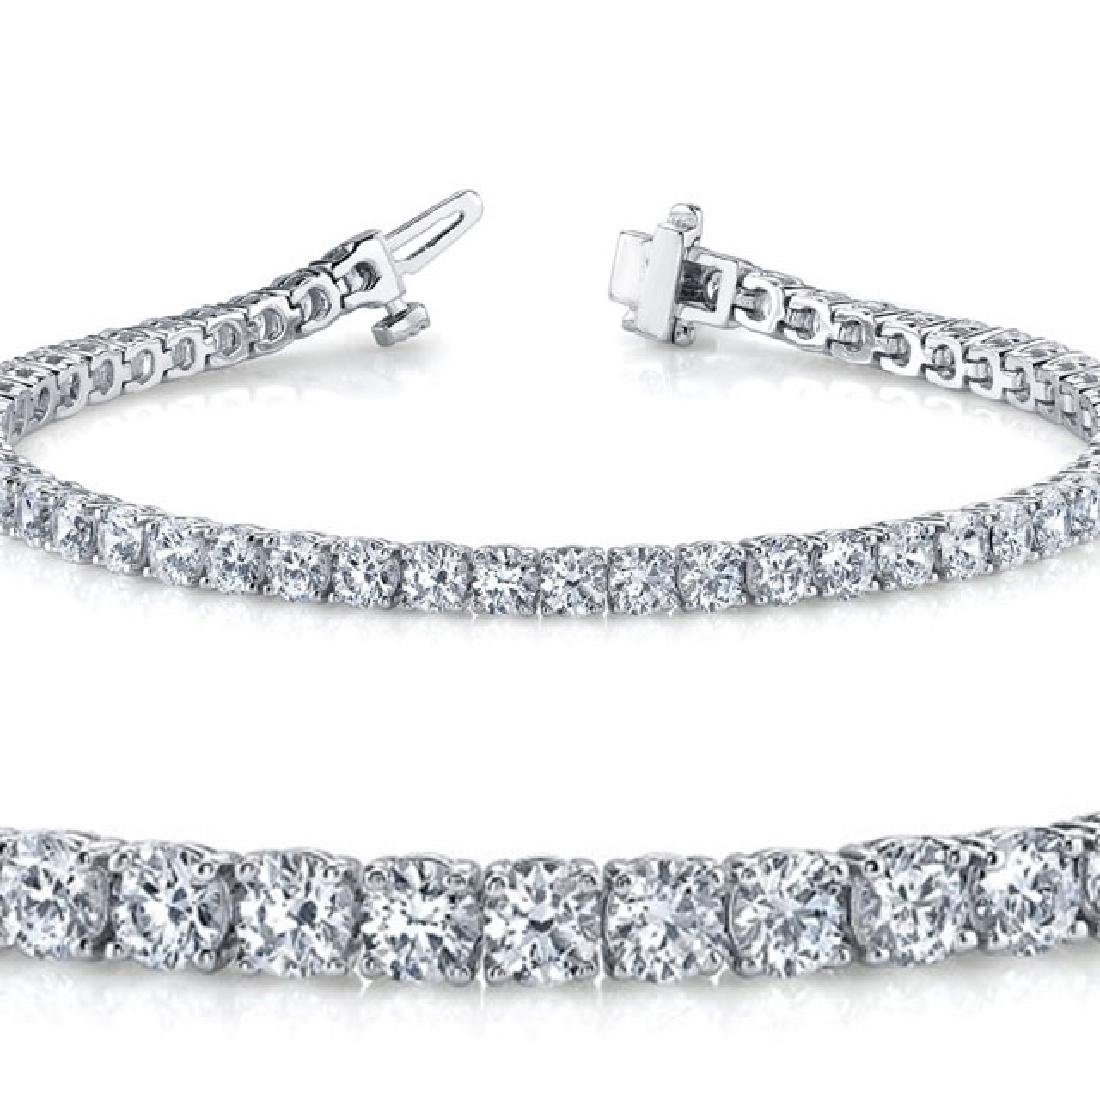 Natural 4.02ct VS-SI Diamond Tennis Bracelet Platinum -